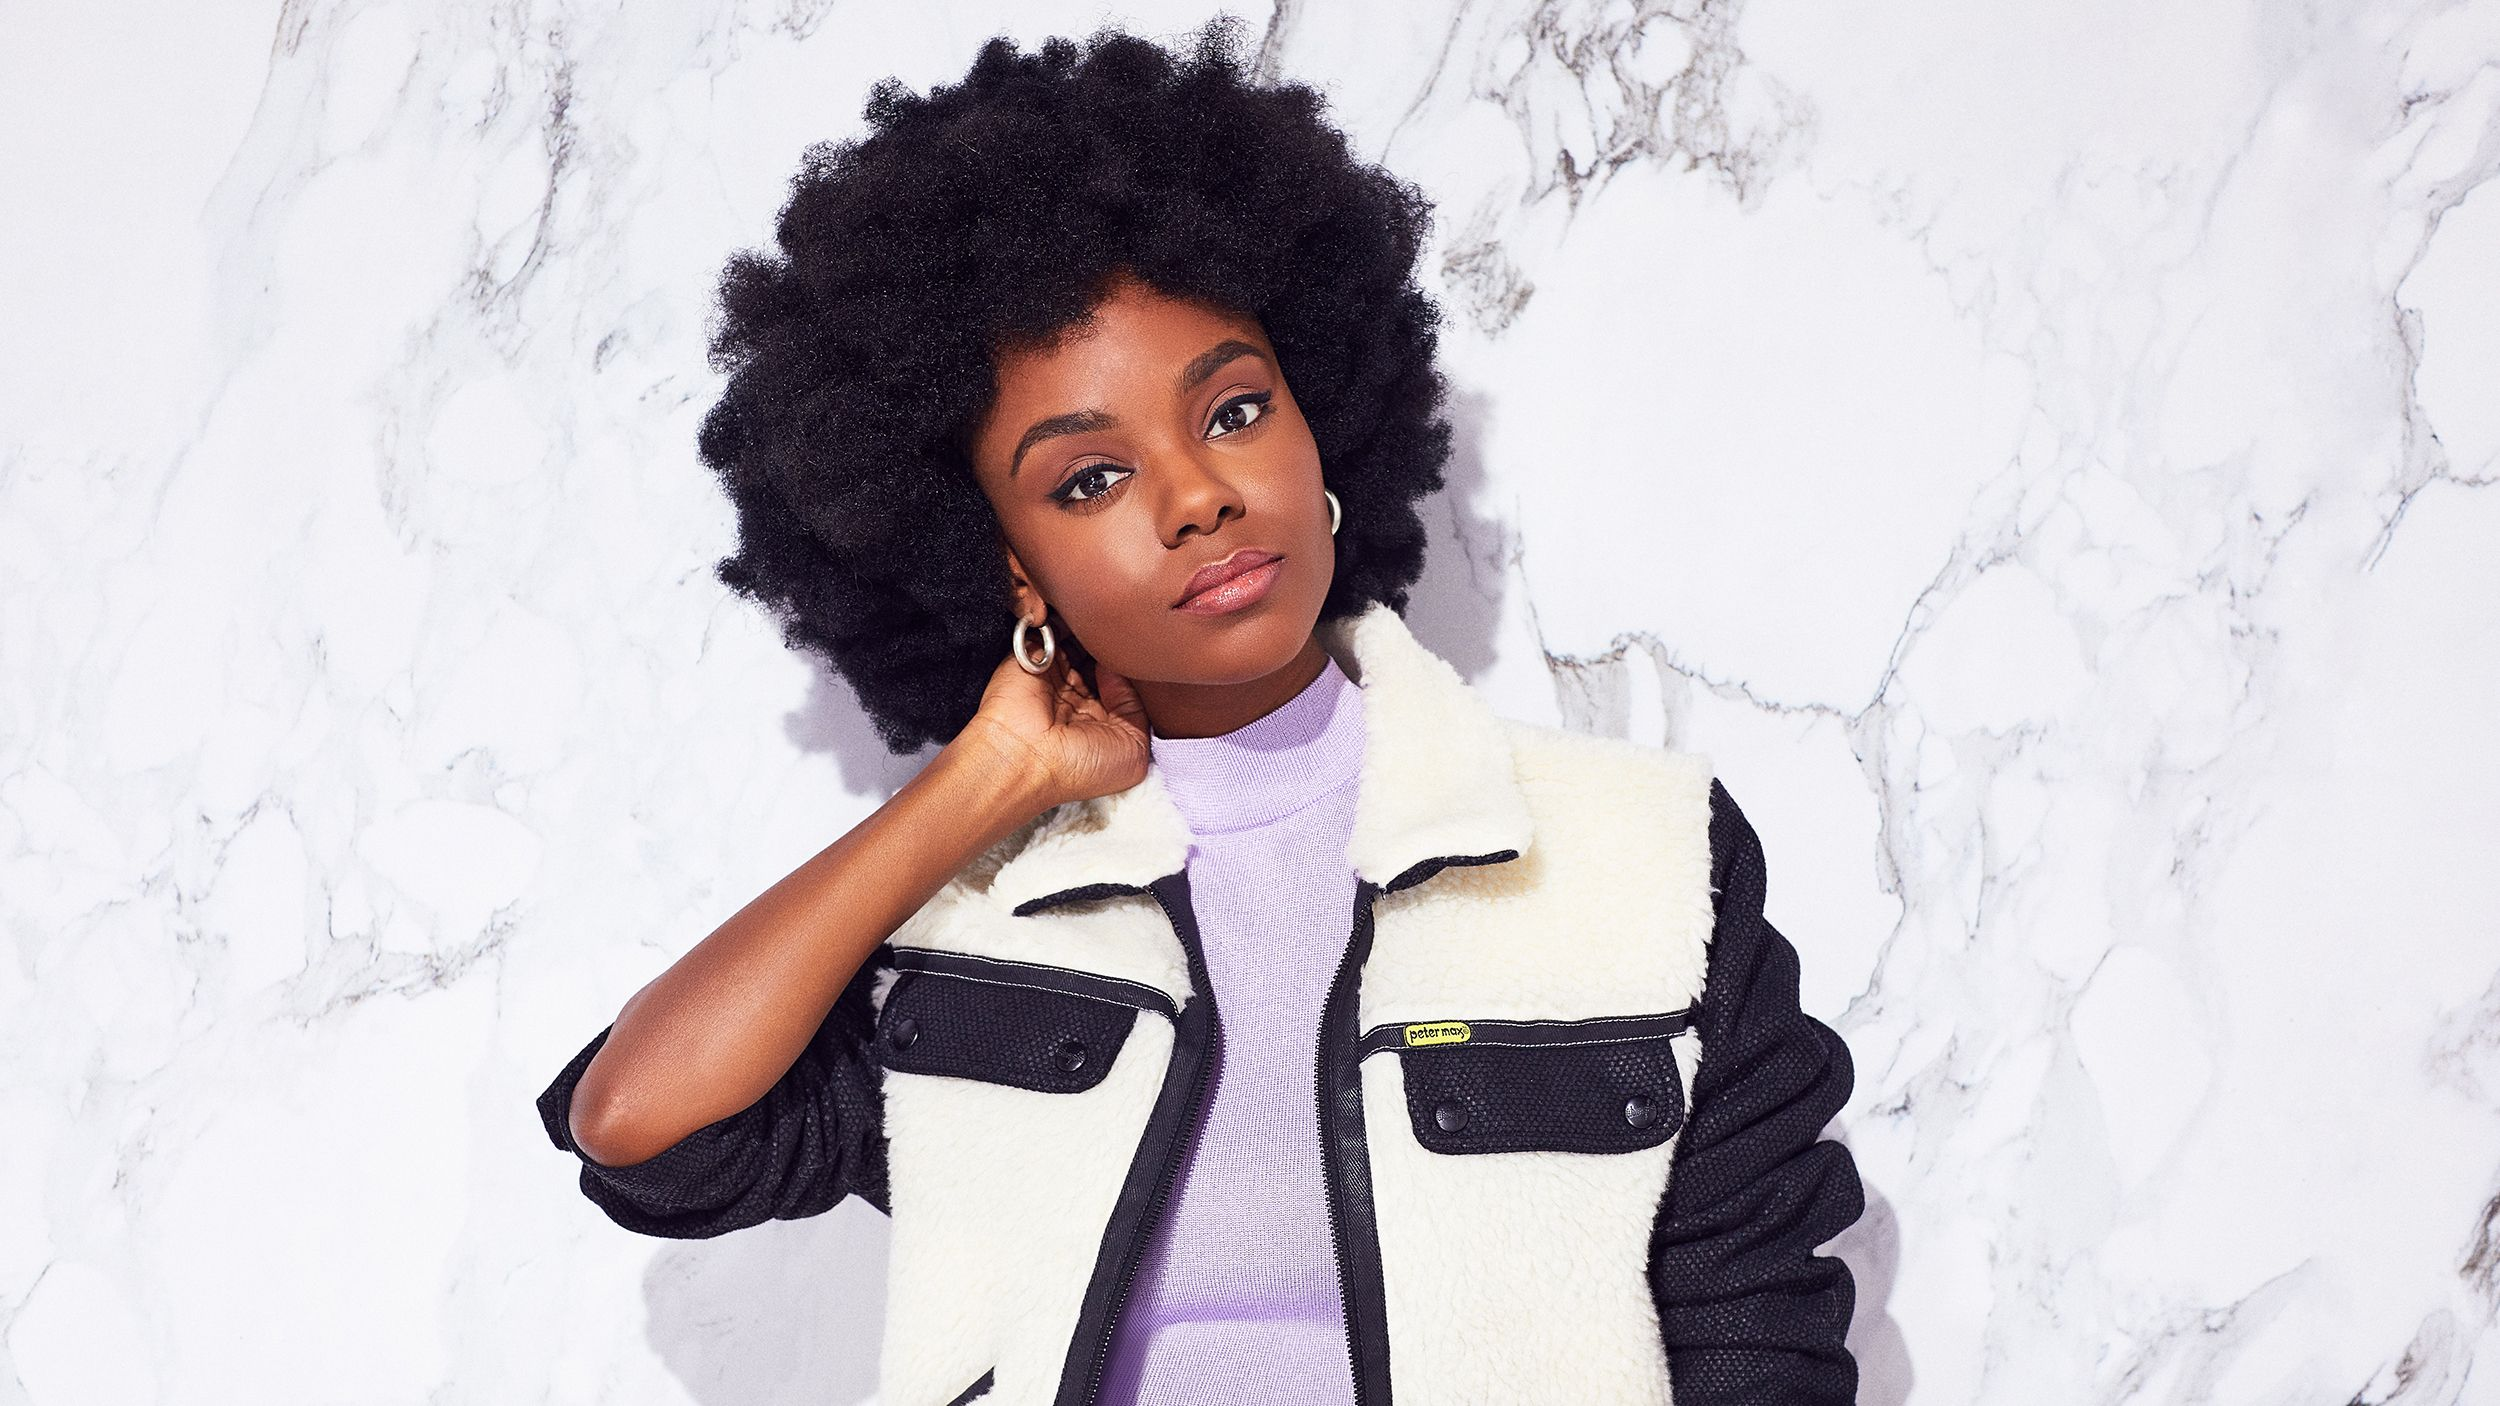 Discussion on this topic: Nina Arsenault, ashleigh-murray/